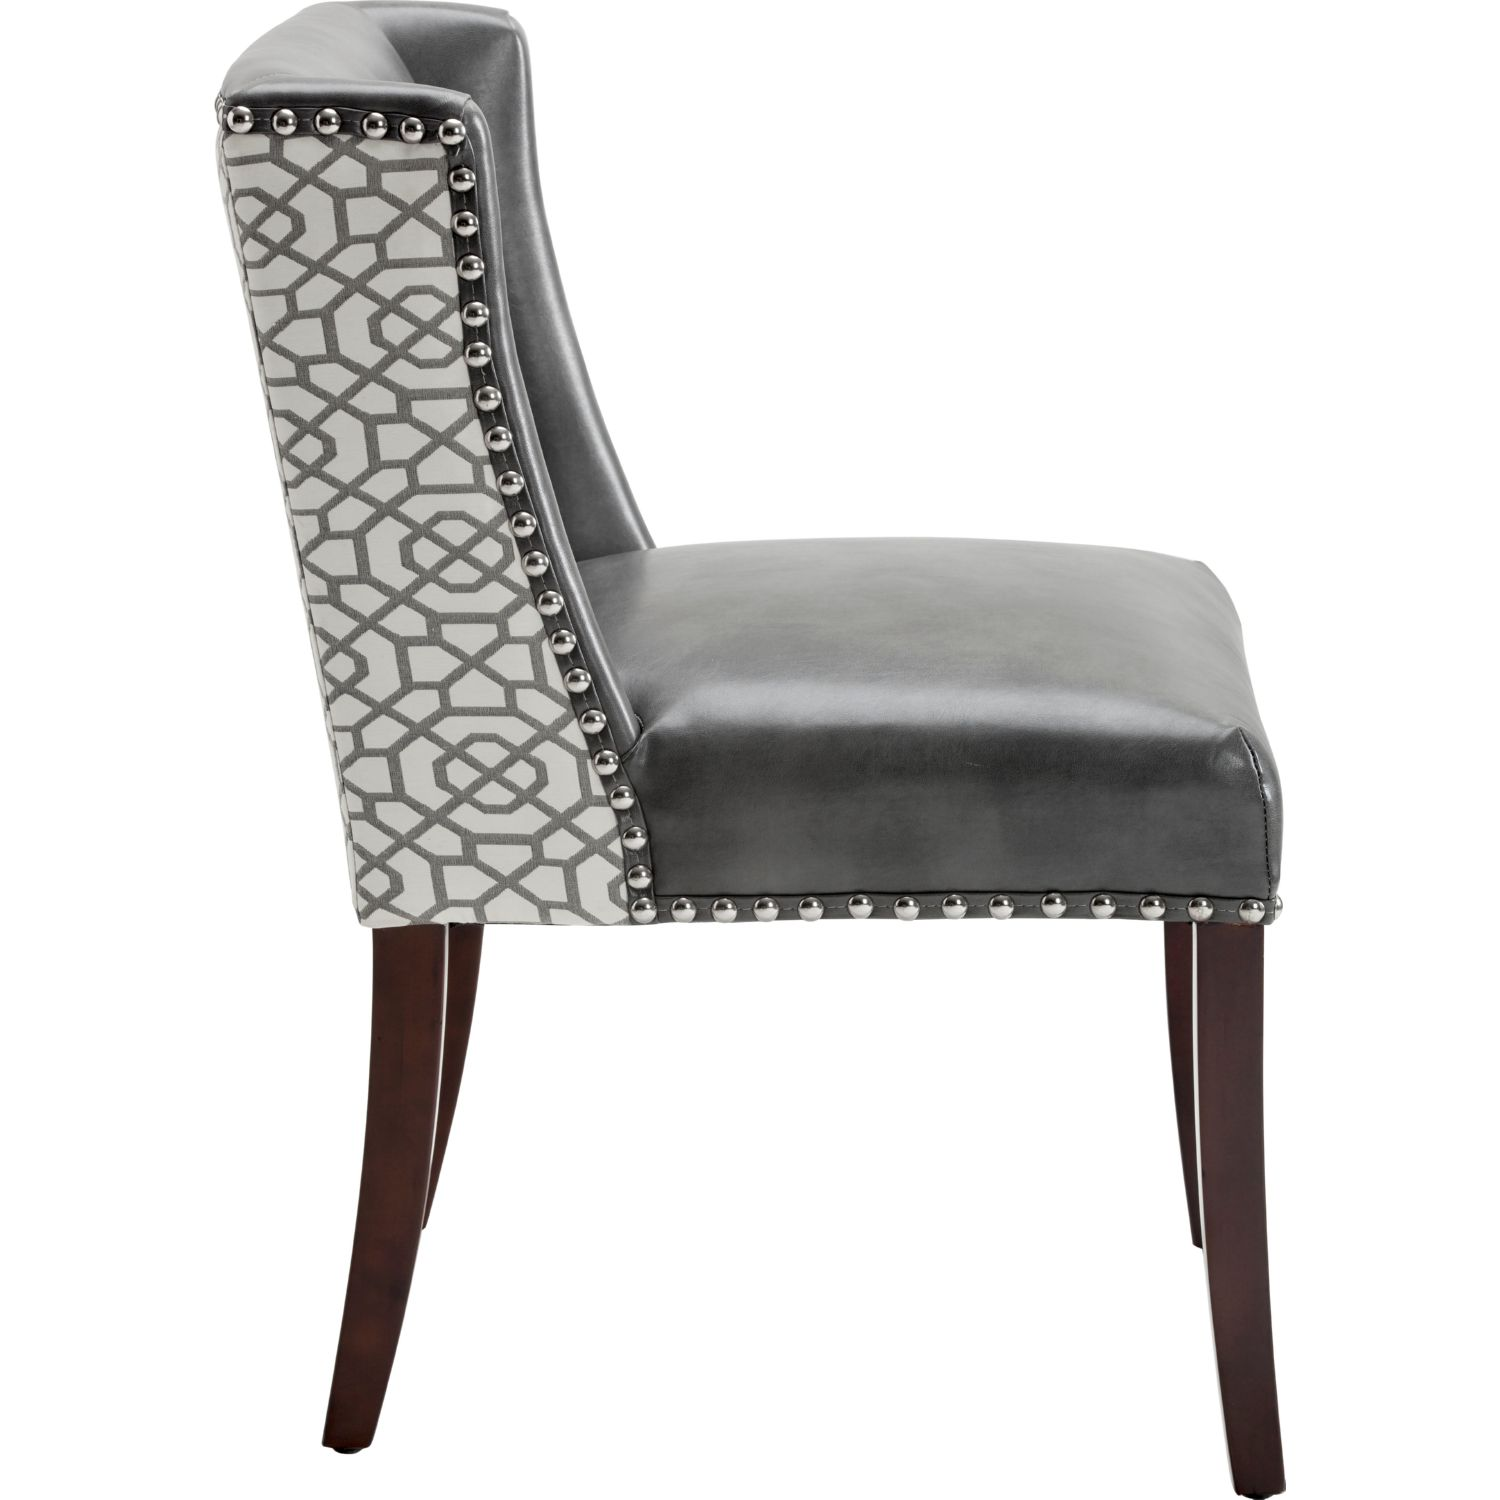 Sunpan Marlin Dining Chair in Nobility Grey Leather Front u0026 Diamond Fabric Back (Set of 2)  sc 1 st  Dynamic Home Decor & Sunpan 101088 Marlin Dining Chair in Nobility Grey Leather Front ...